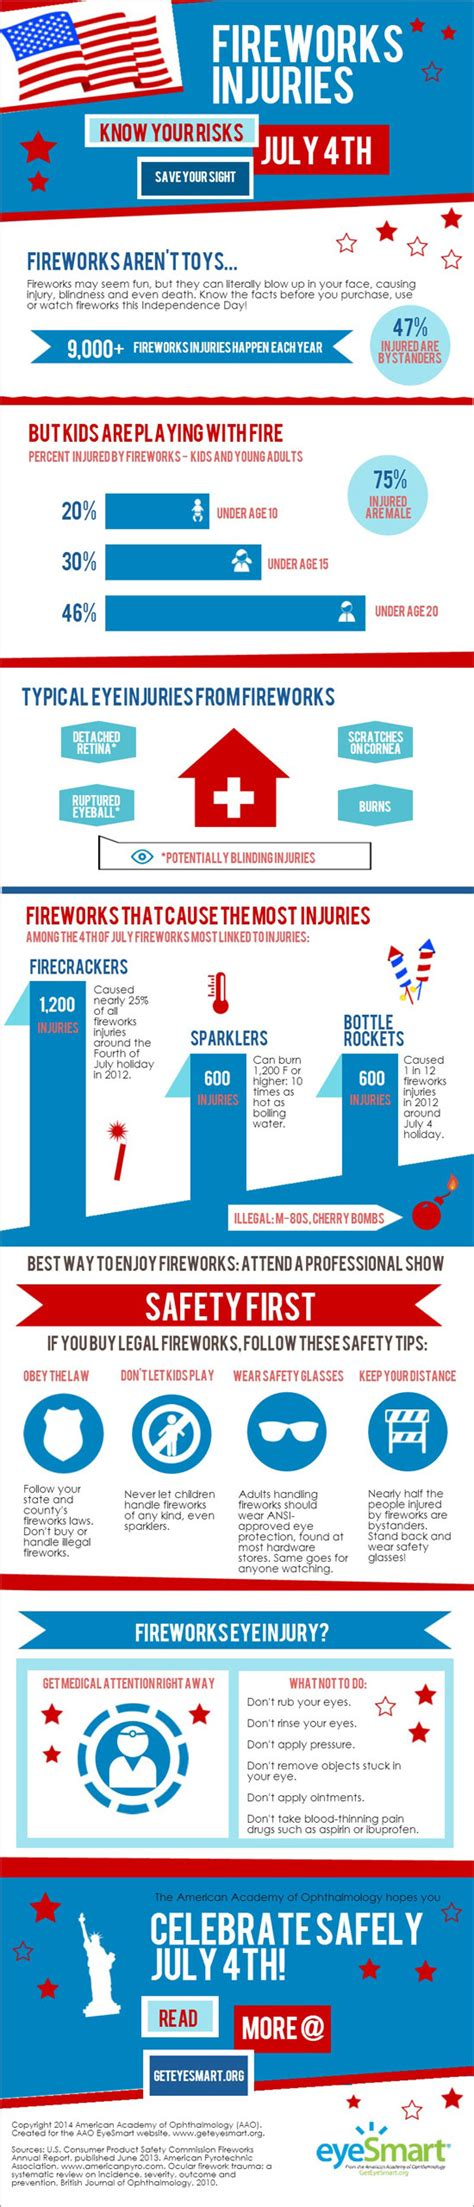 eye health dangers infographic fireworks injuries american academy of